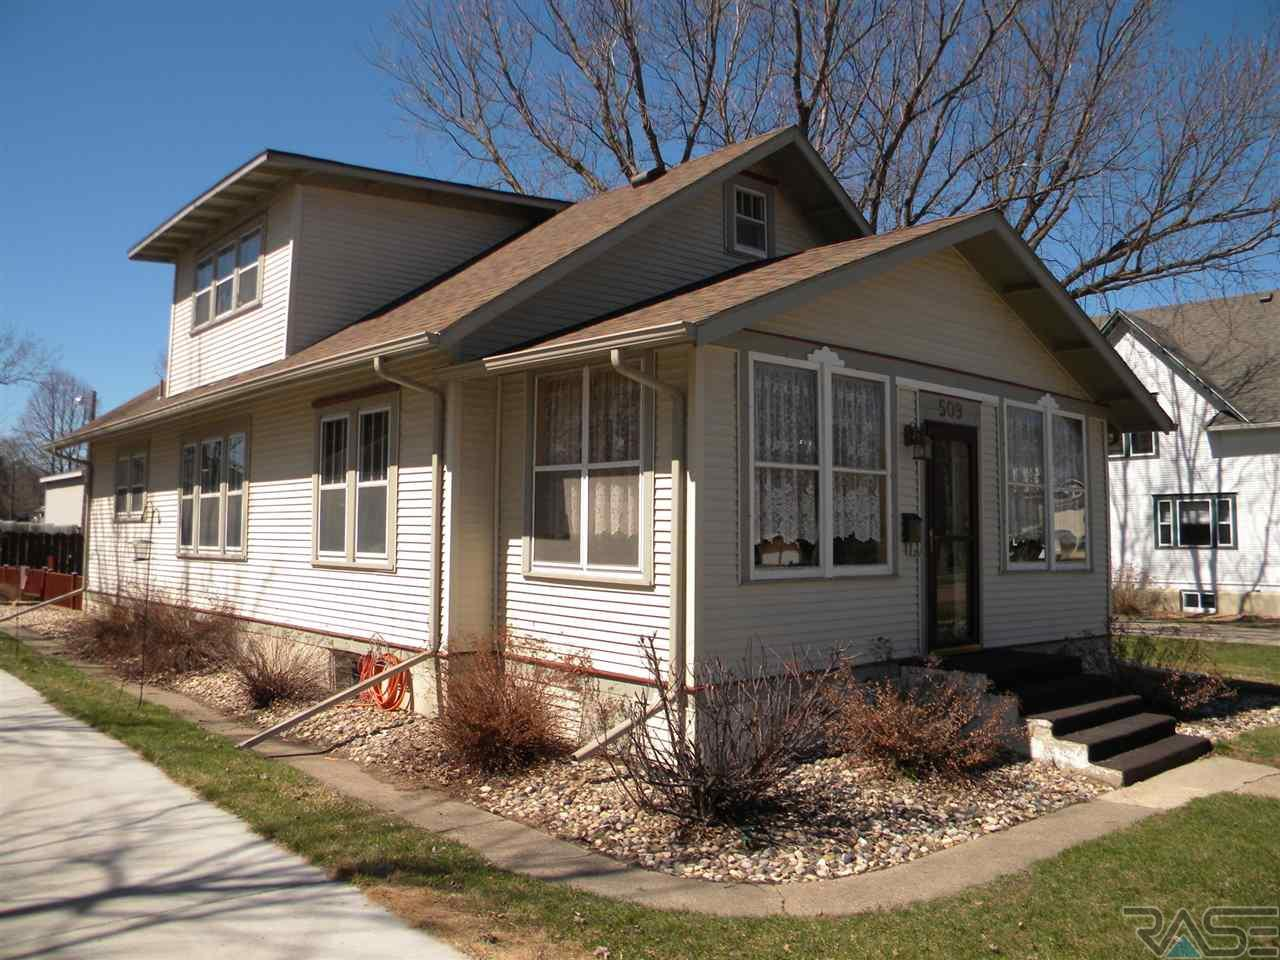 509 N Blanche Ave, Madison, SD 57042